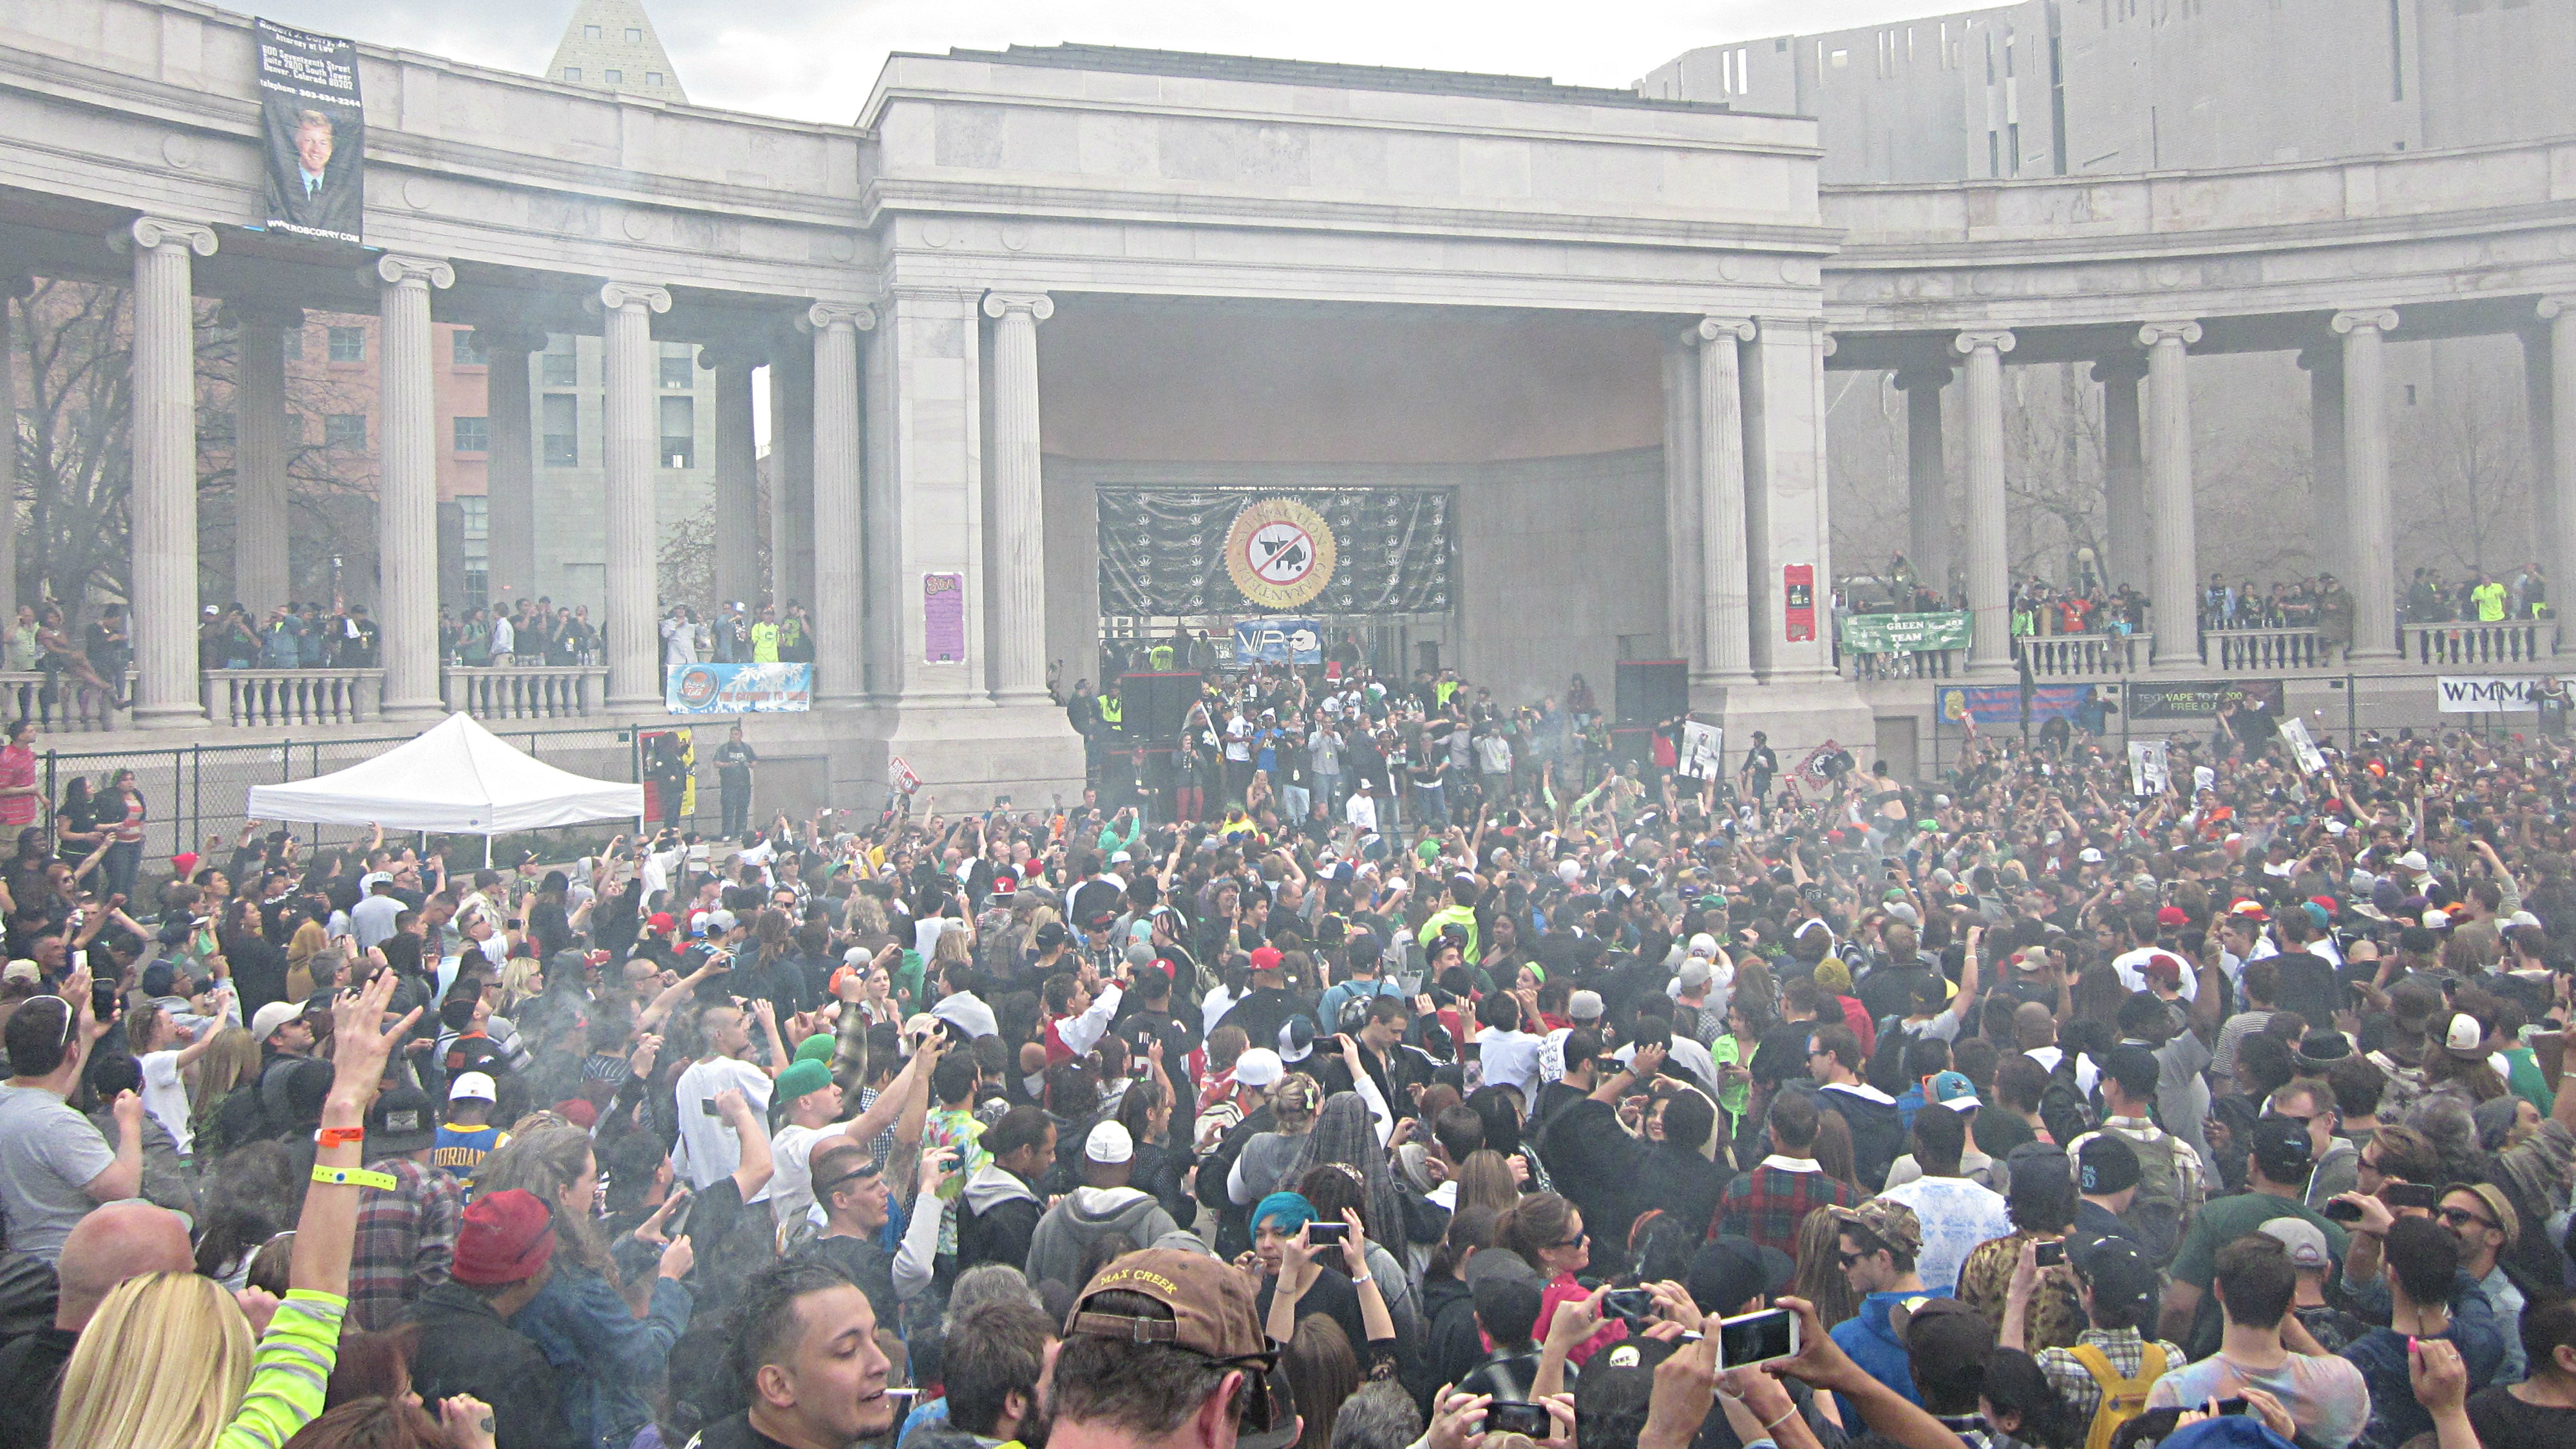 <p>A cloud of marijuana smoke rises from the annual 4/20 celebration in Denver. About 100,000 people came to Civic Center to celebrate in April.</p>